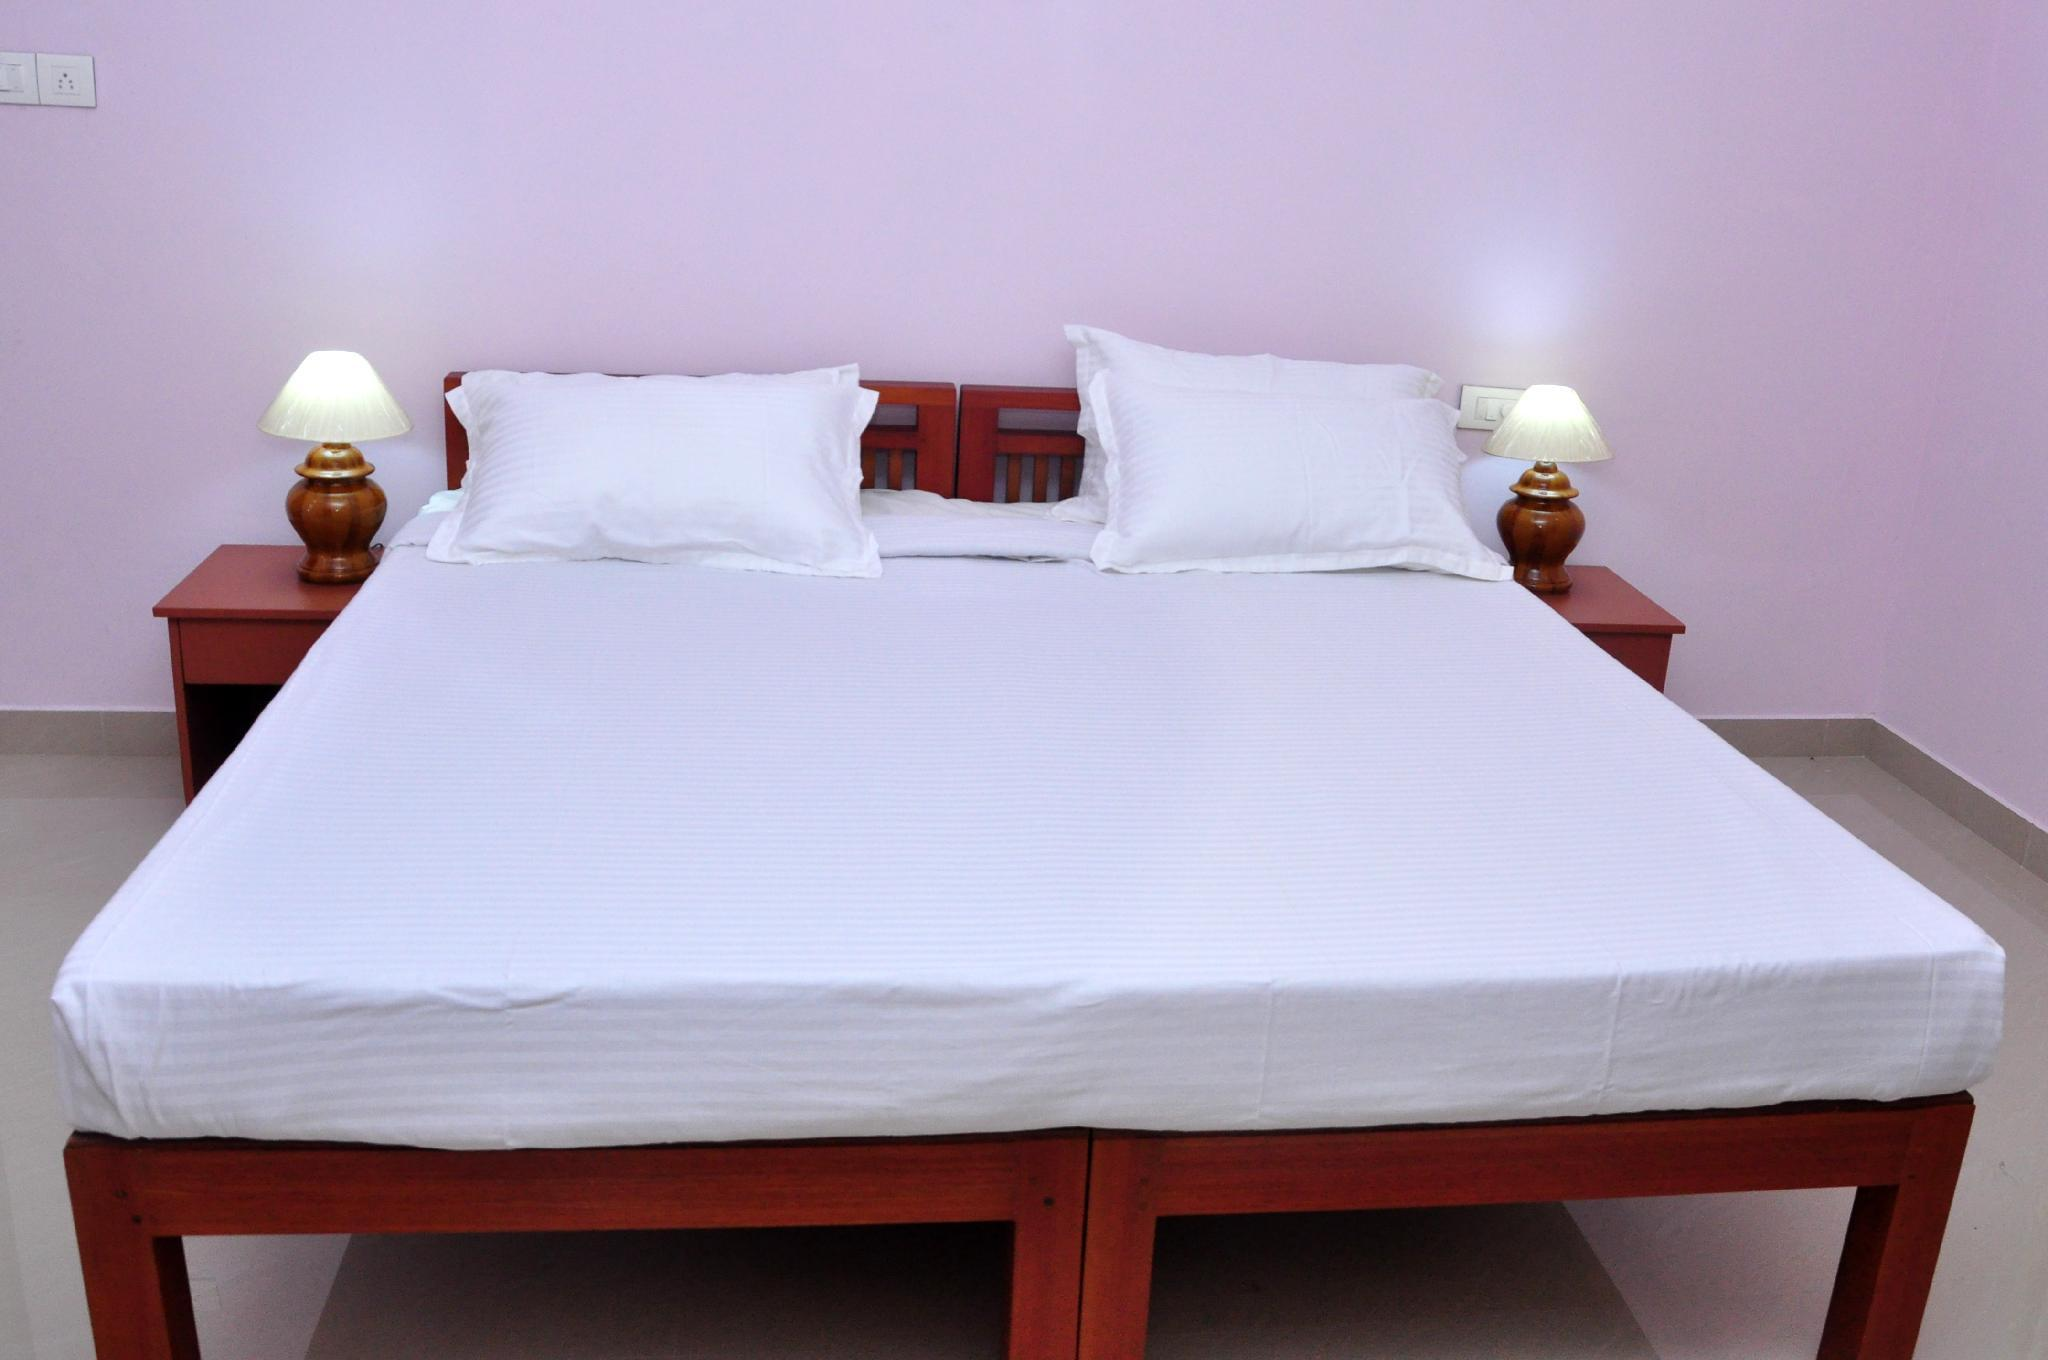 We Will Make Our Guest Happy With Our Place